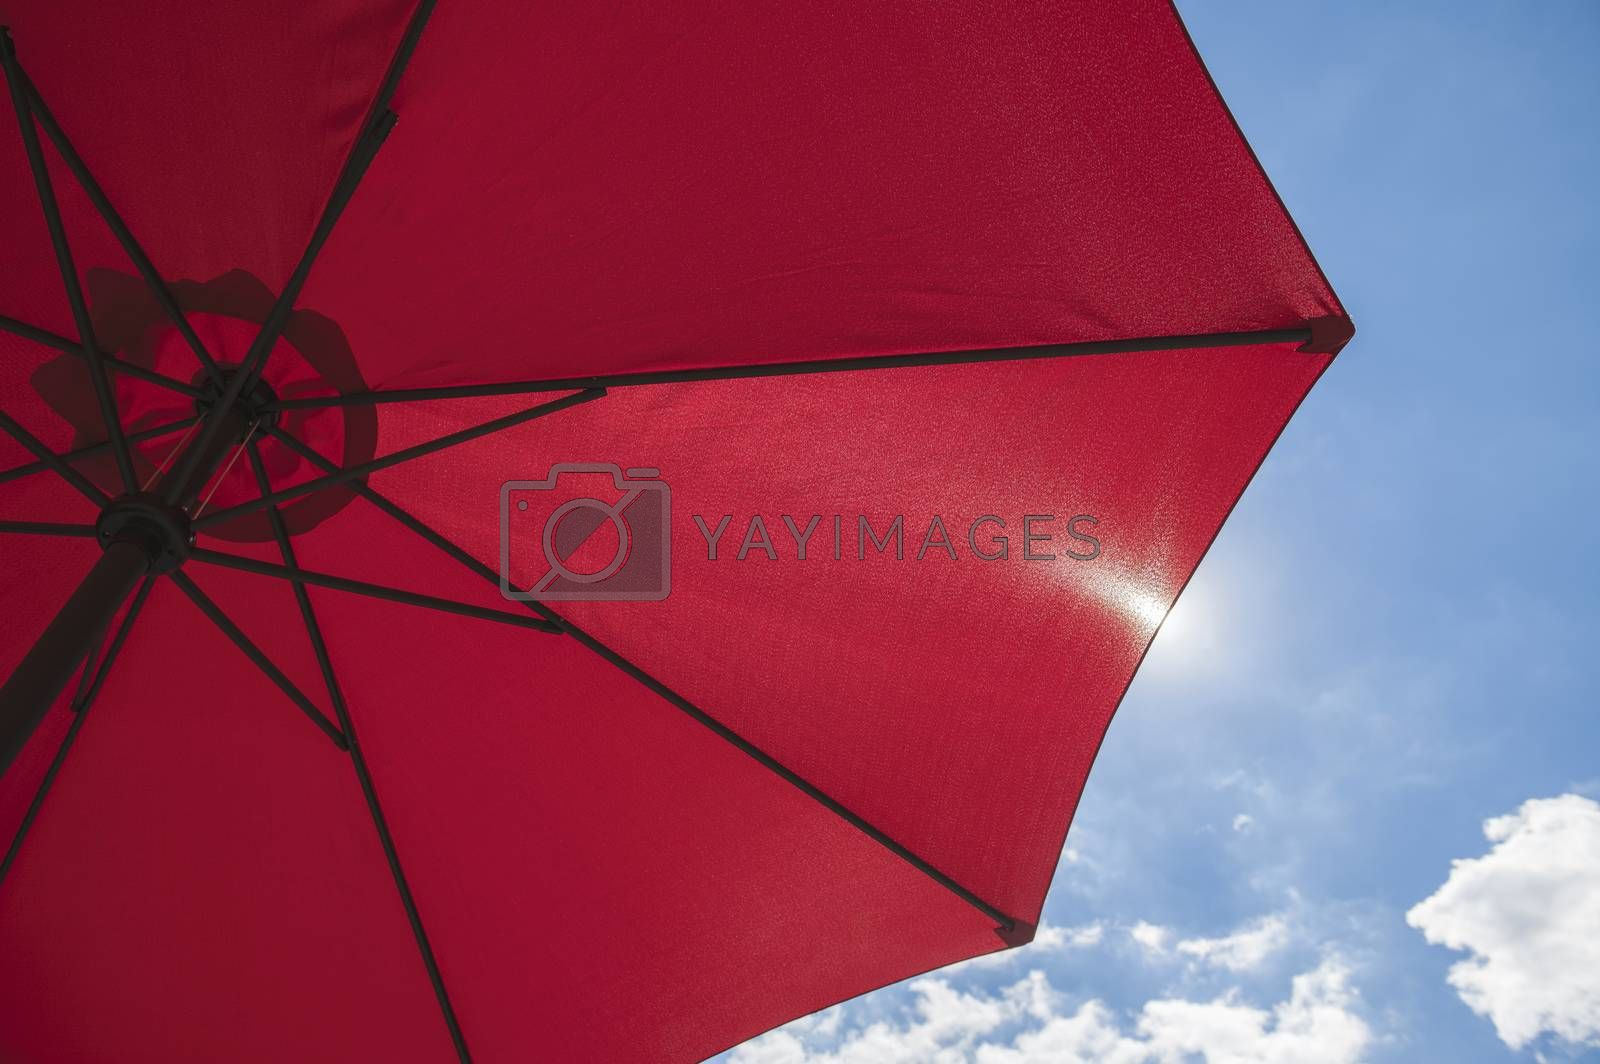 Red beach parasol against a blue sky  by Tofotografie